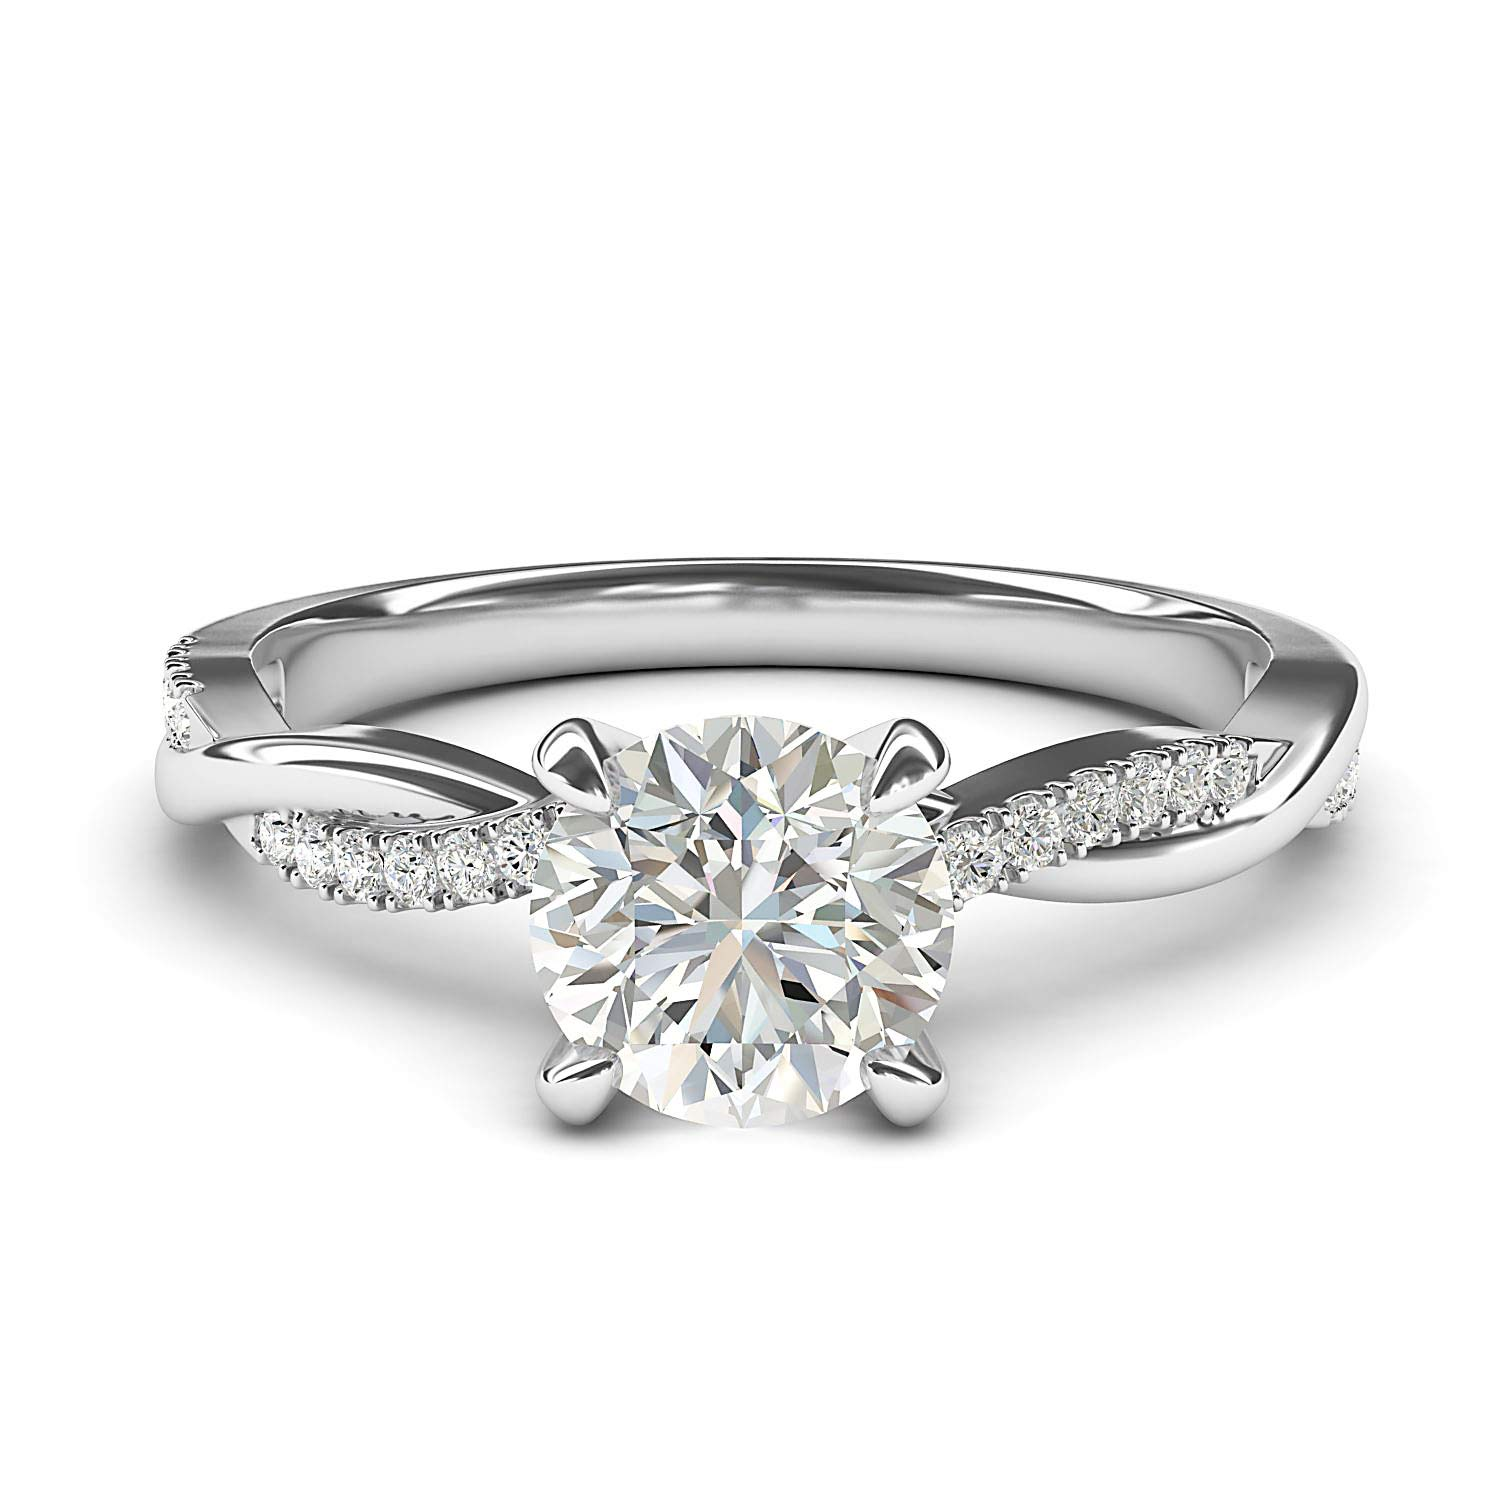 14k White Gold 4-Prong Petite Twisted Vine Simulated 1.0 CT Diamond Engagement Ring Promise Bridal Ring (7)